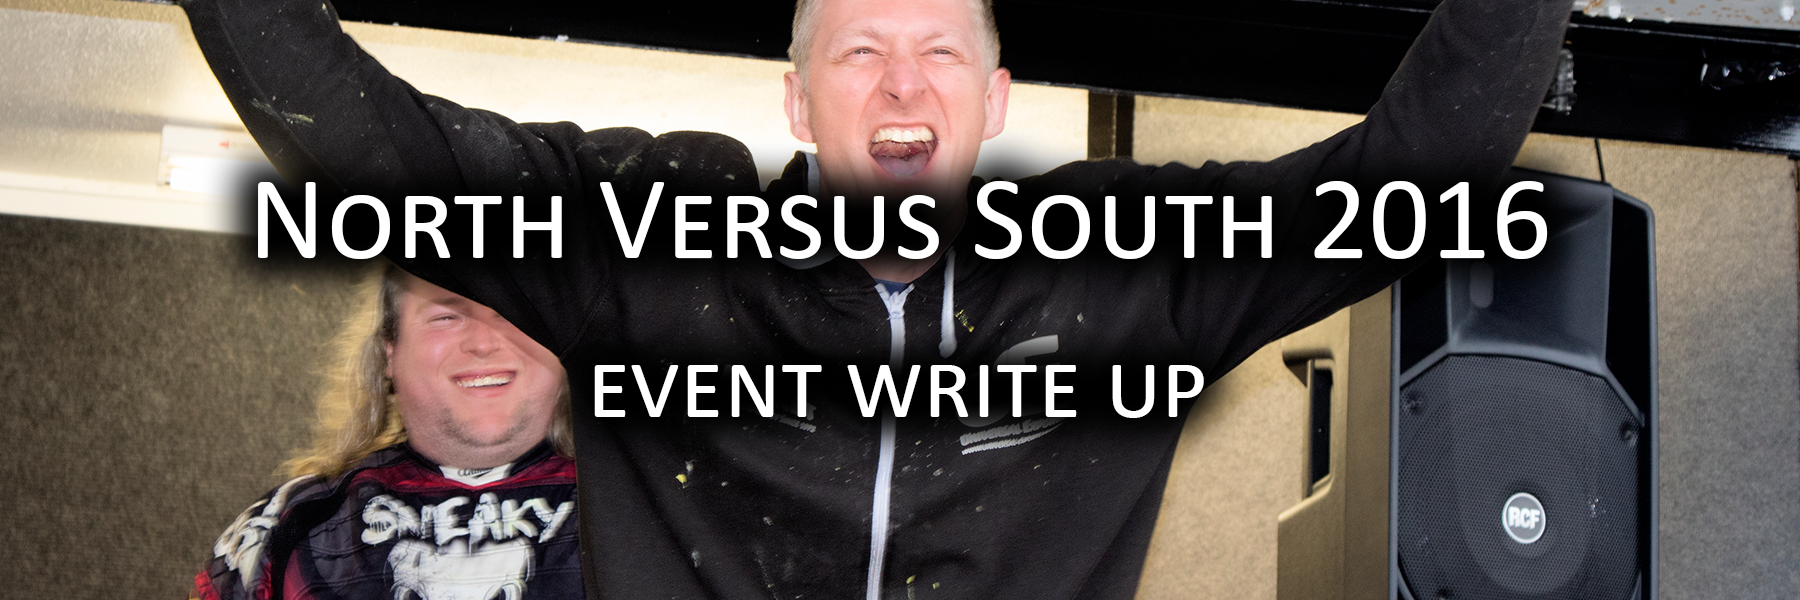 North Versus South 2016 Event Writeup